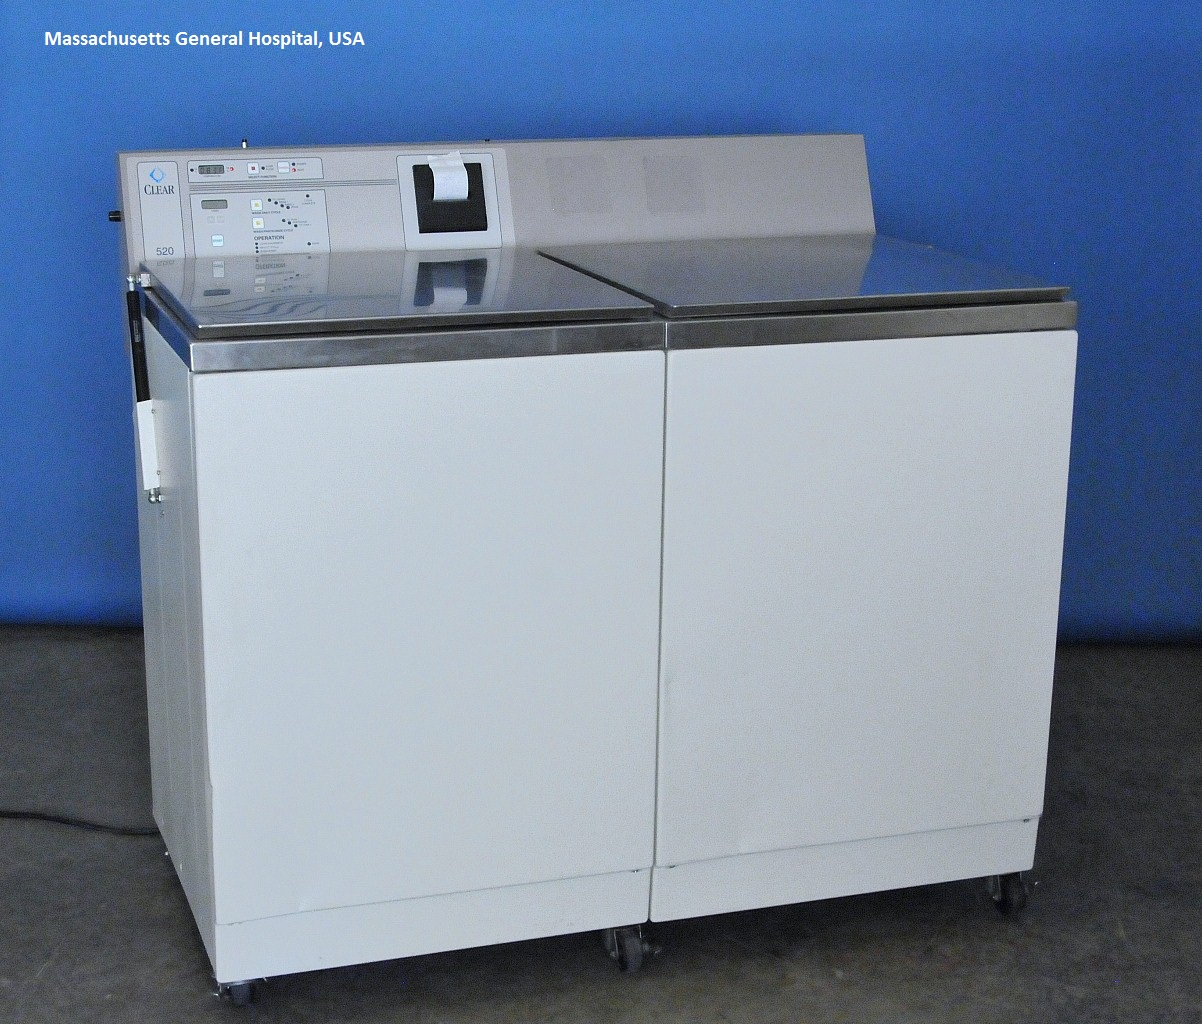 Instrument / tubing washer / pasteurizer - $3,975 each.